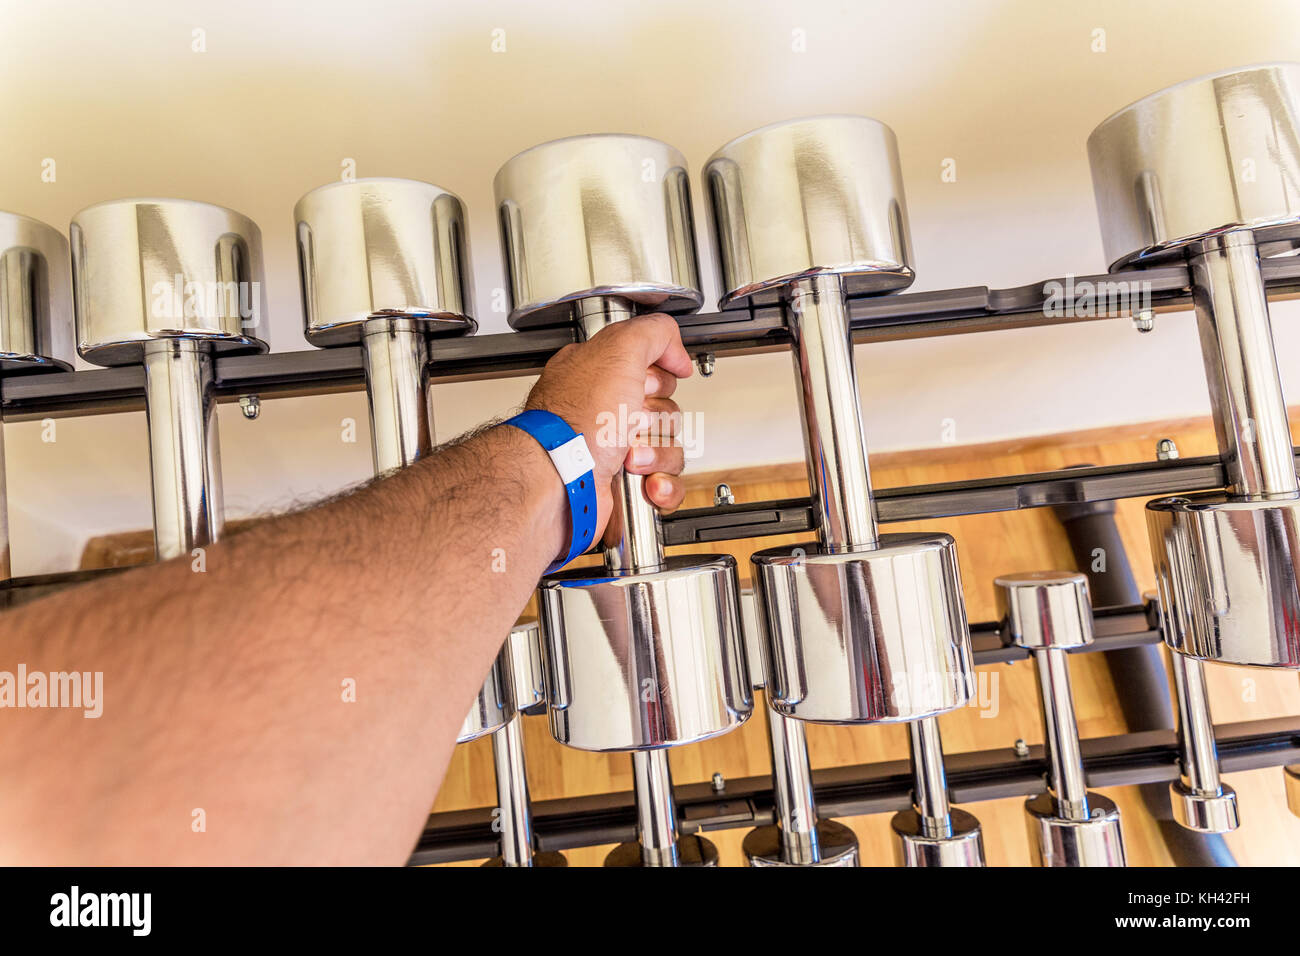 Point of view grabbing dumbbell at the gym - Stock Image